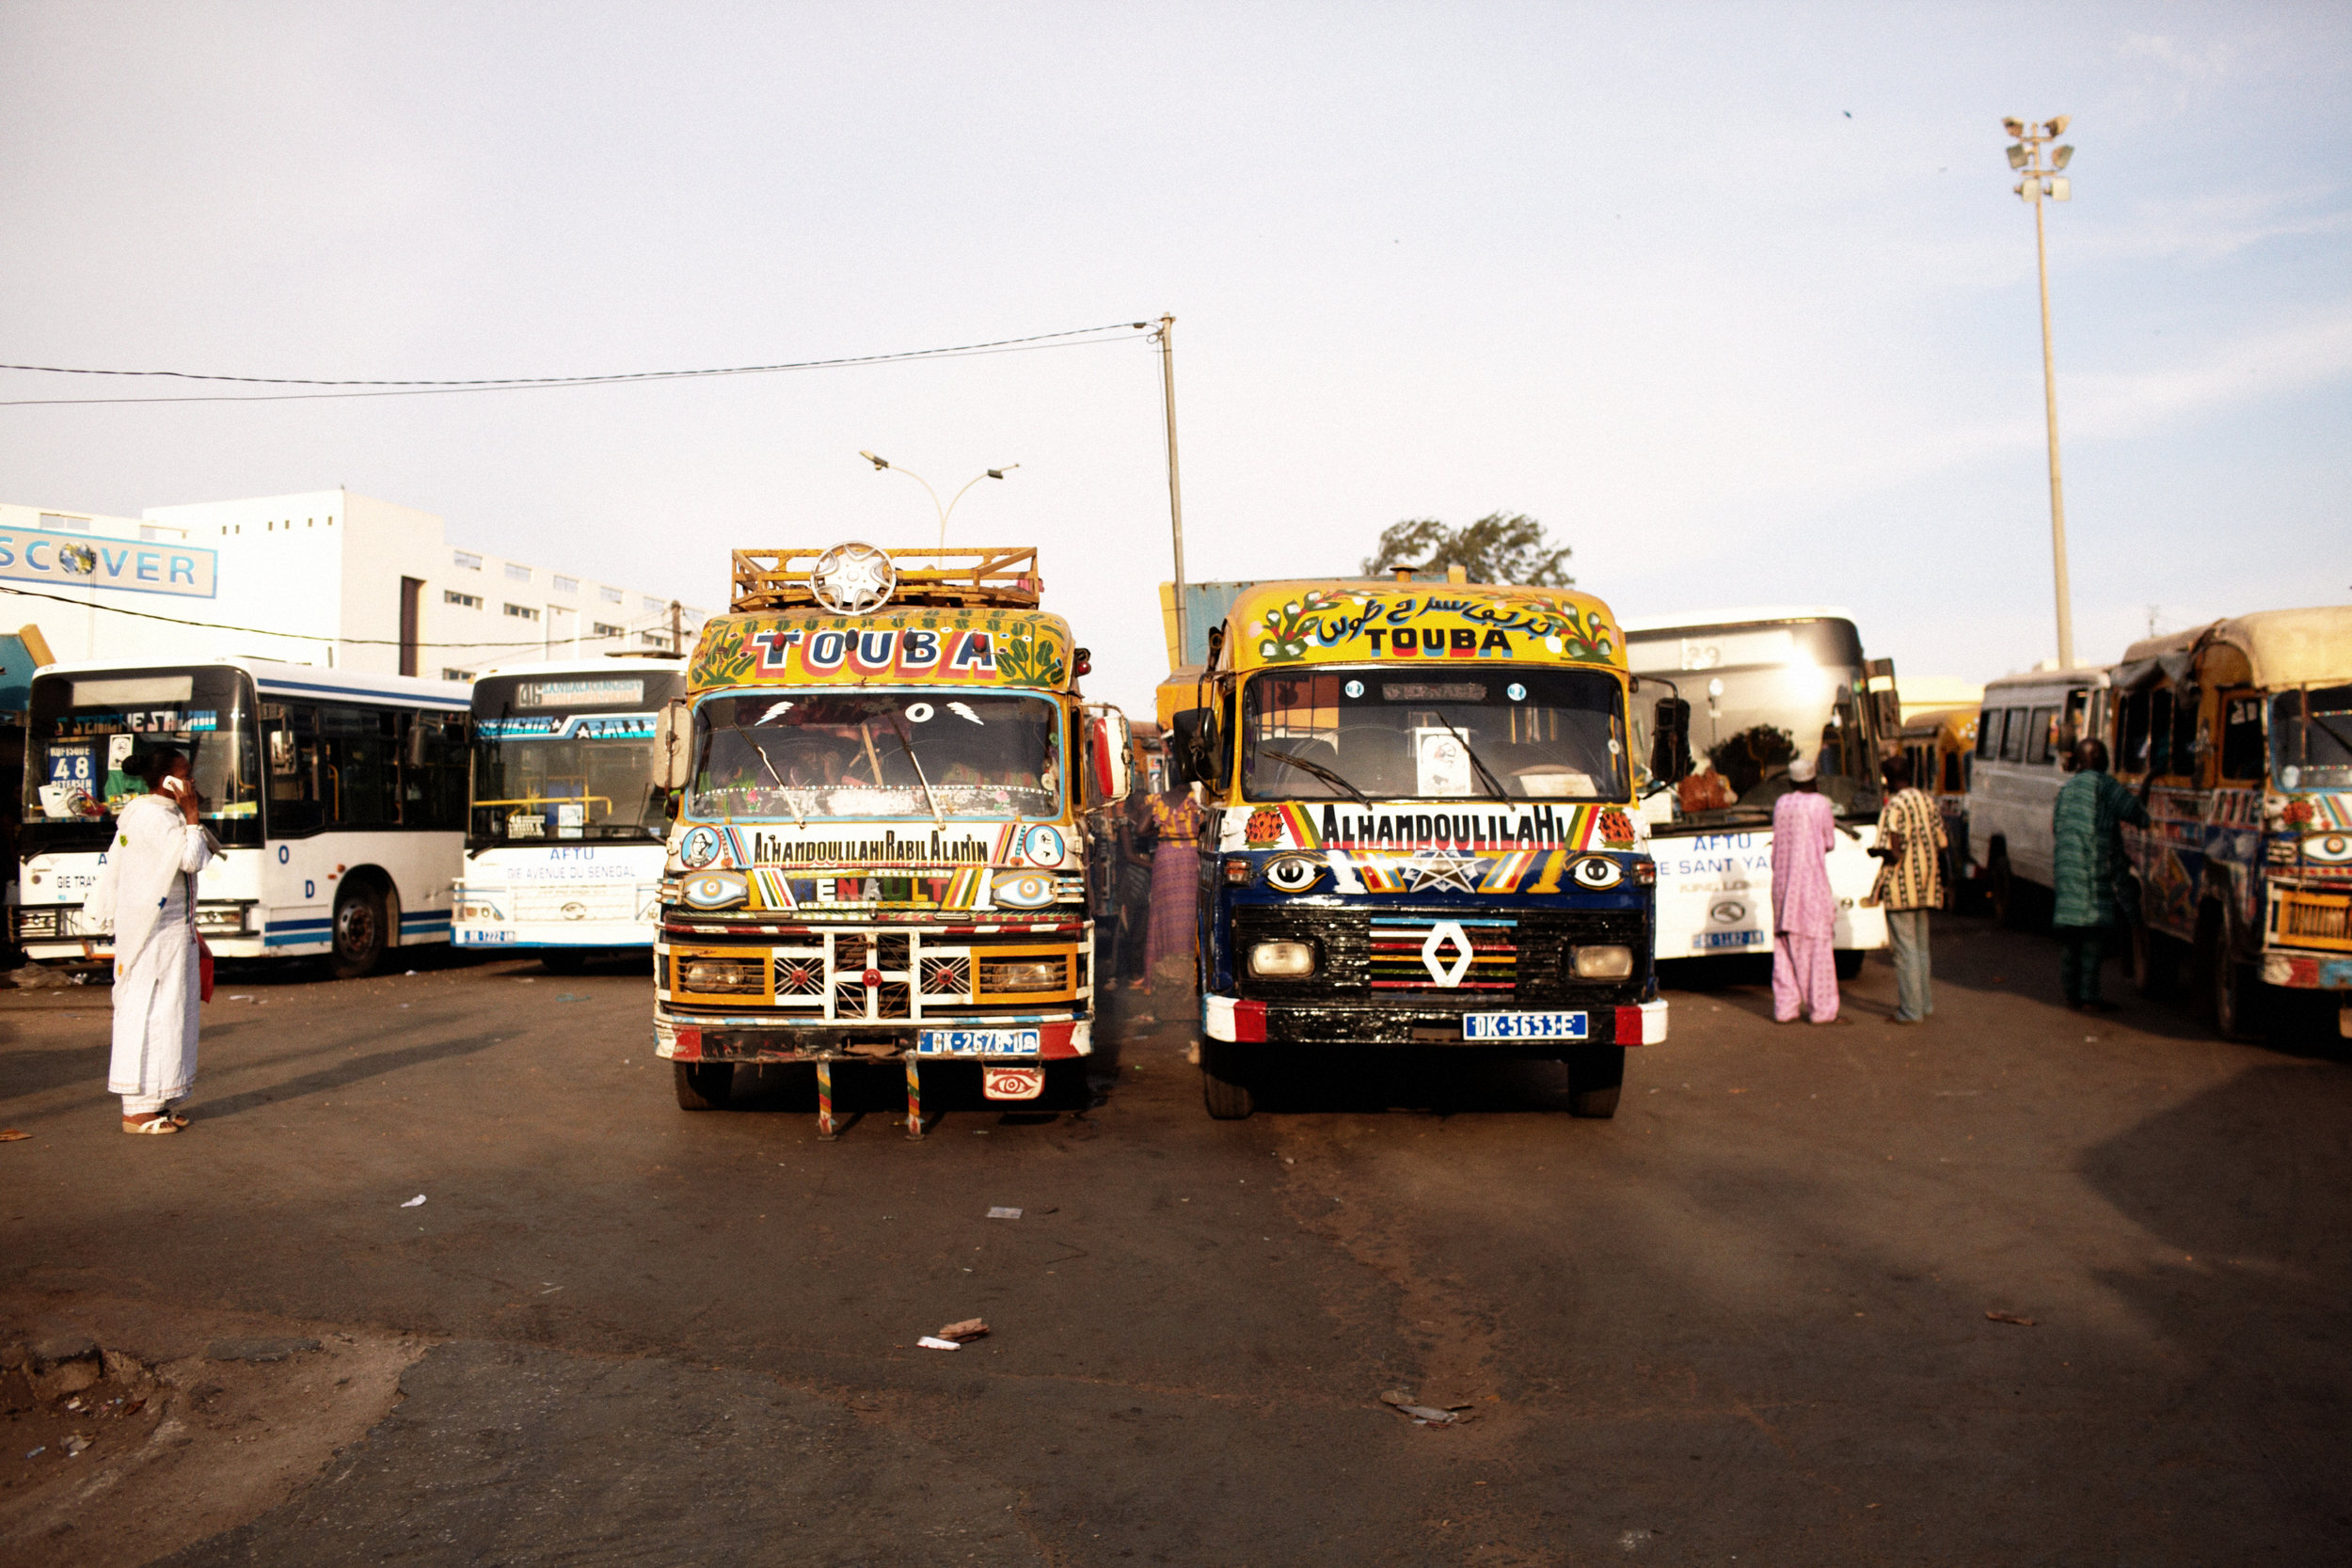 I was so obsessed with these colorful busses! They were all over the place.